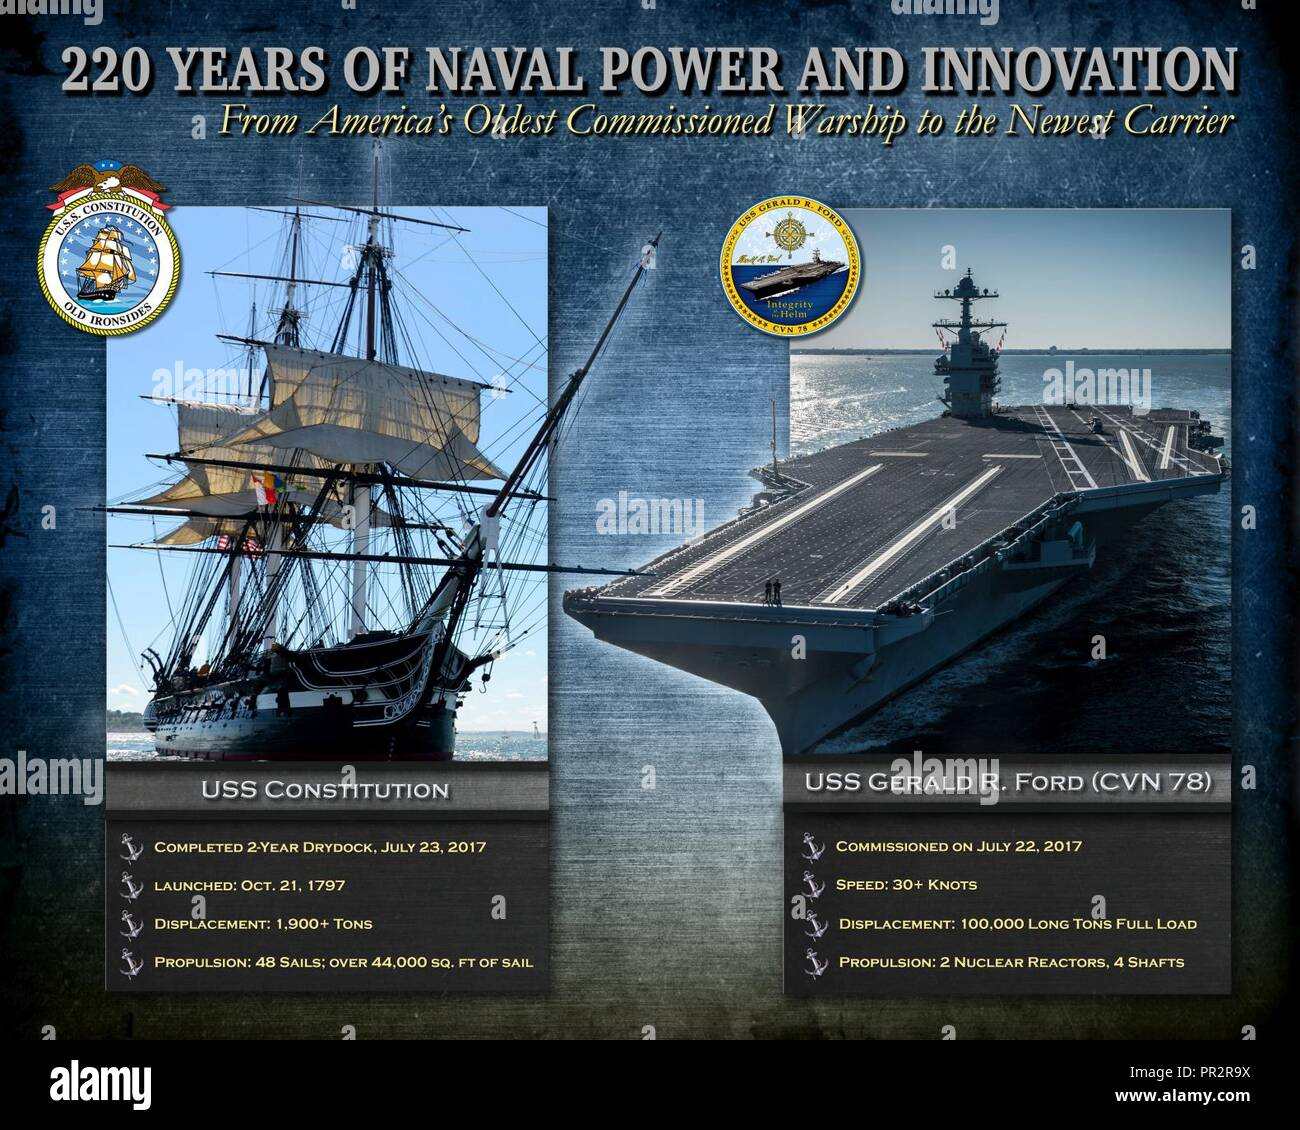 NORFOLK, Va. (July 25, 2017) Photographic illustration depicting 220 years of naval power and innovation with ship facts about USS Constitution and aircraft carrier USS Gerald R. Ford (CVN 78). Constitution, America's Ship of State and the country's oldest commissioned warship, completed a two-year restoration period before returning to the water on July 23. Ford, the lead ship of the Ford-class aircraft carriers and the first new U.S. aircraft design in over 40 years, was commissioned on July 22. - Stock Image